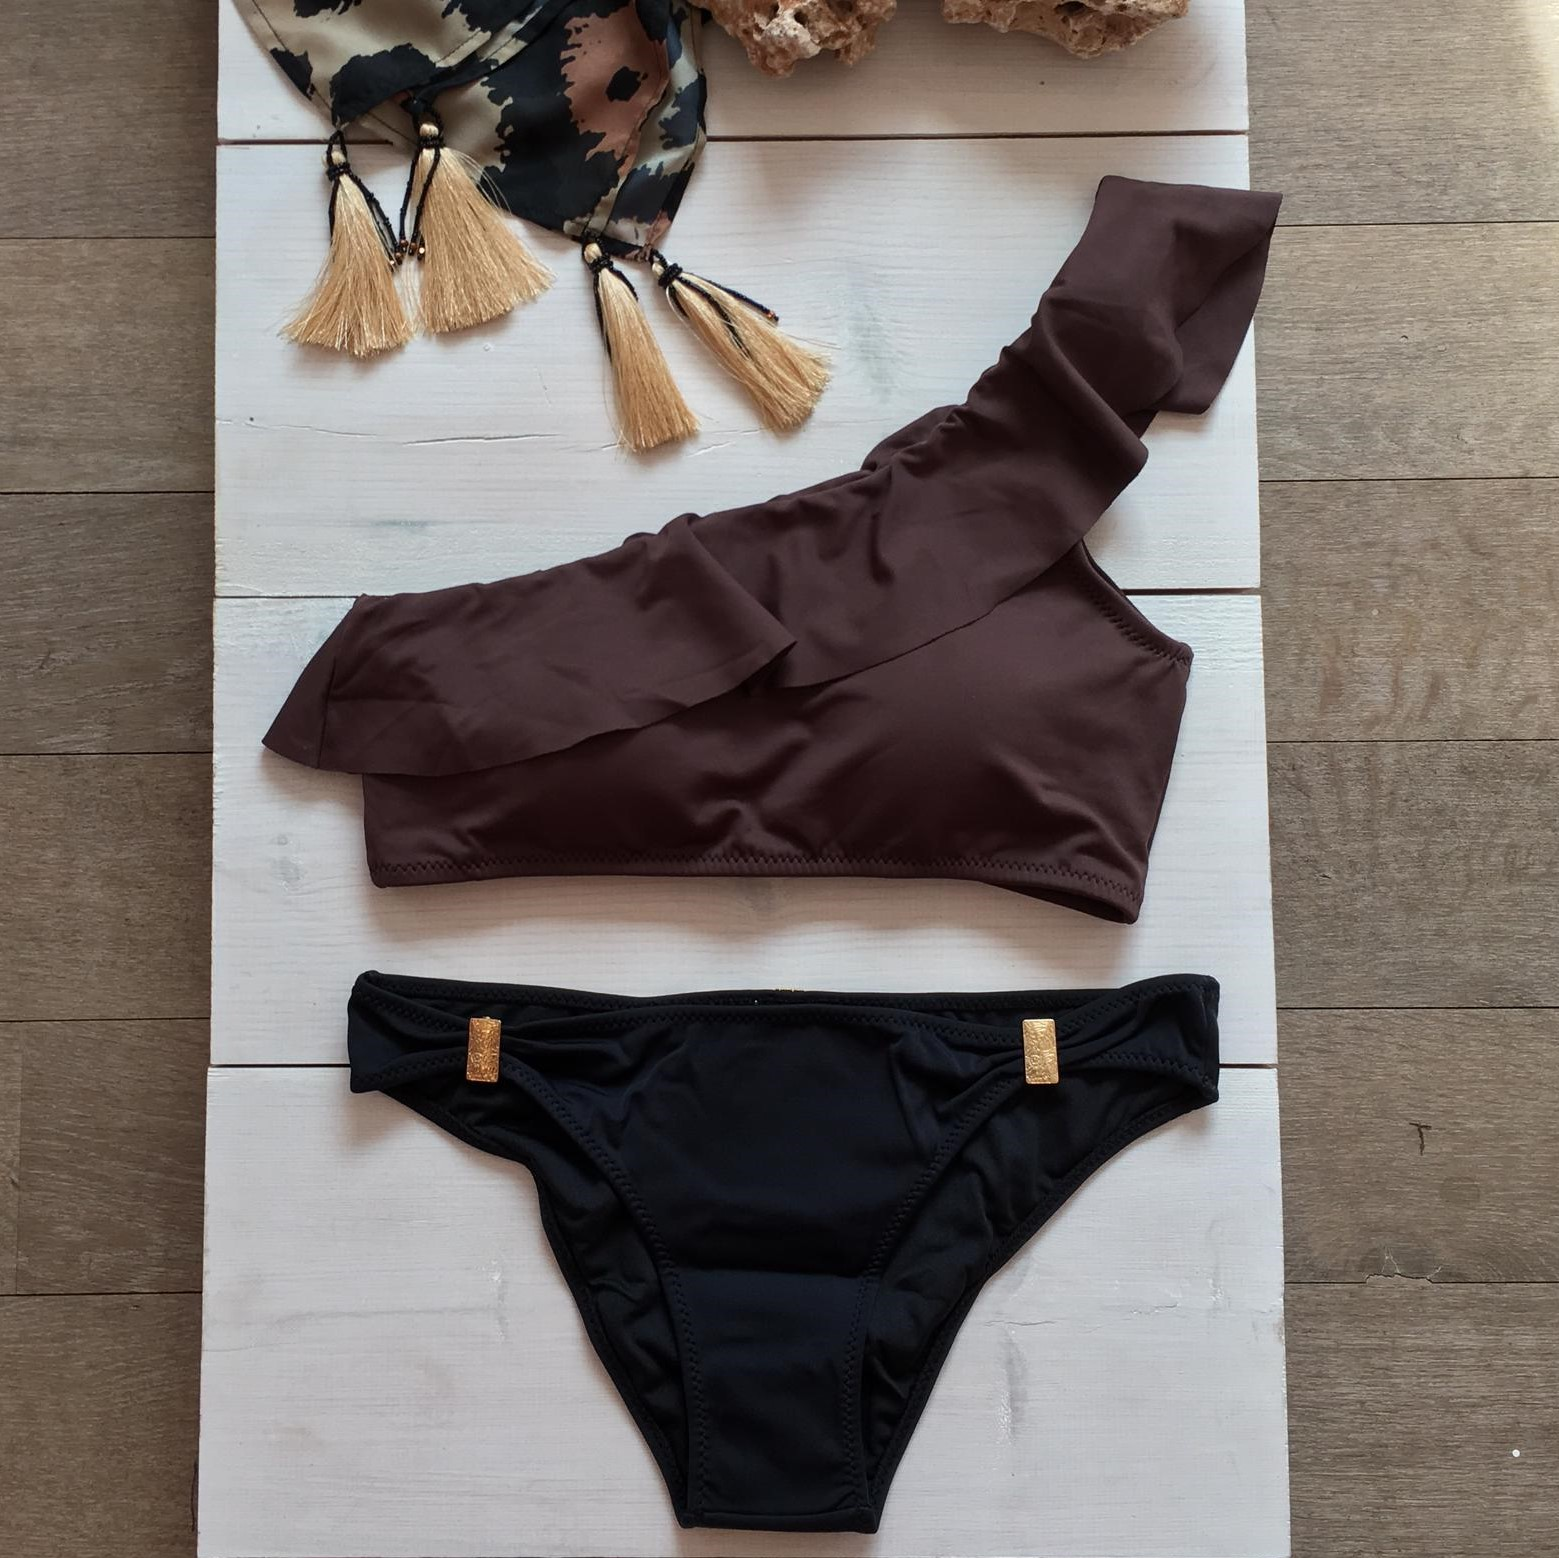 One Shoulder Bikini Brown & intermedium Bikini Bottom Black